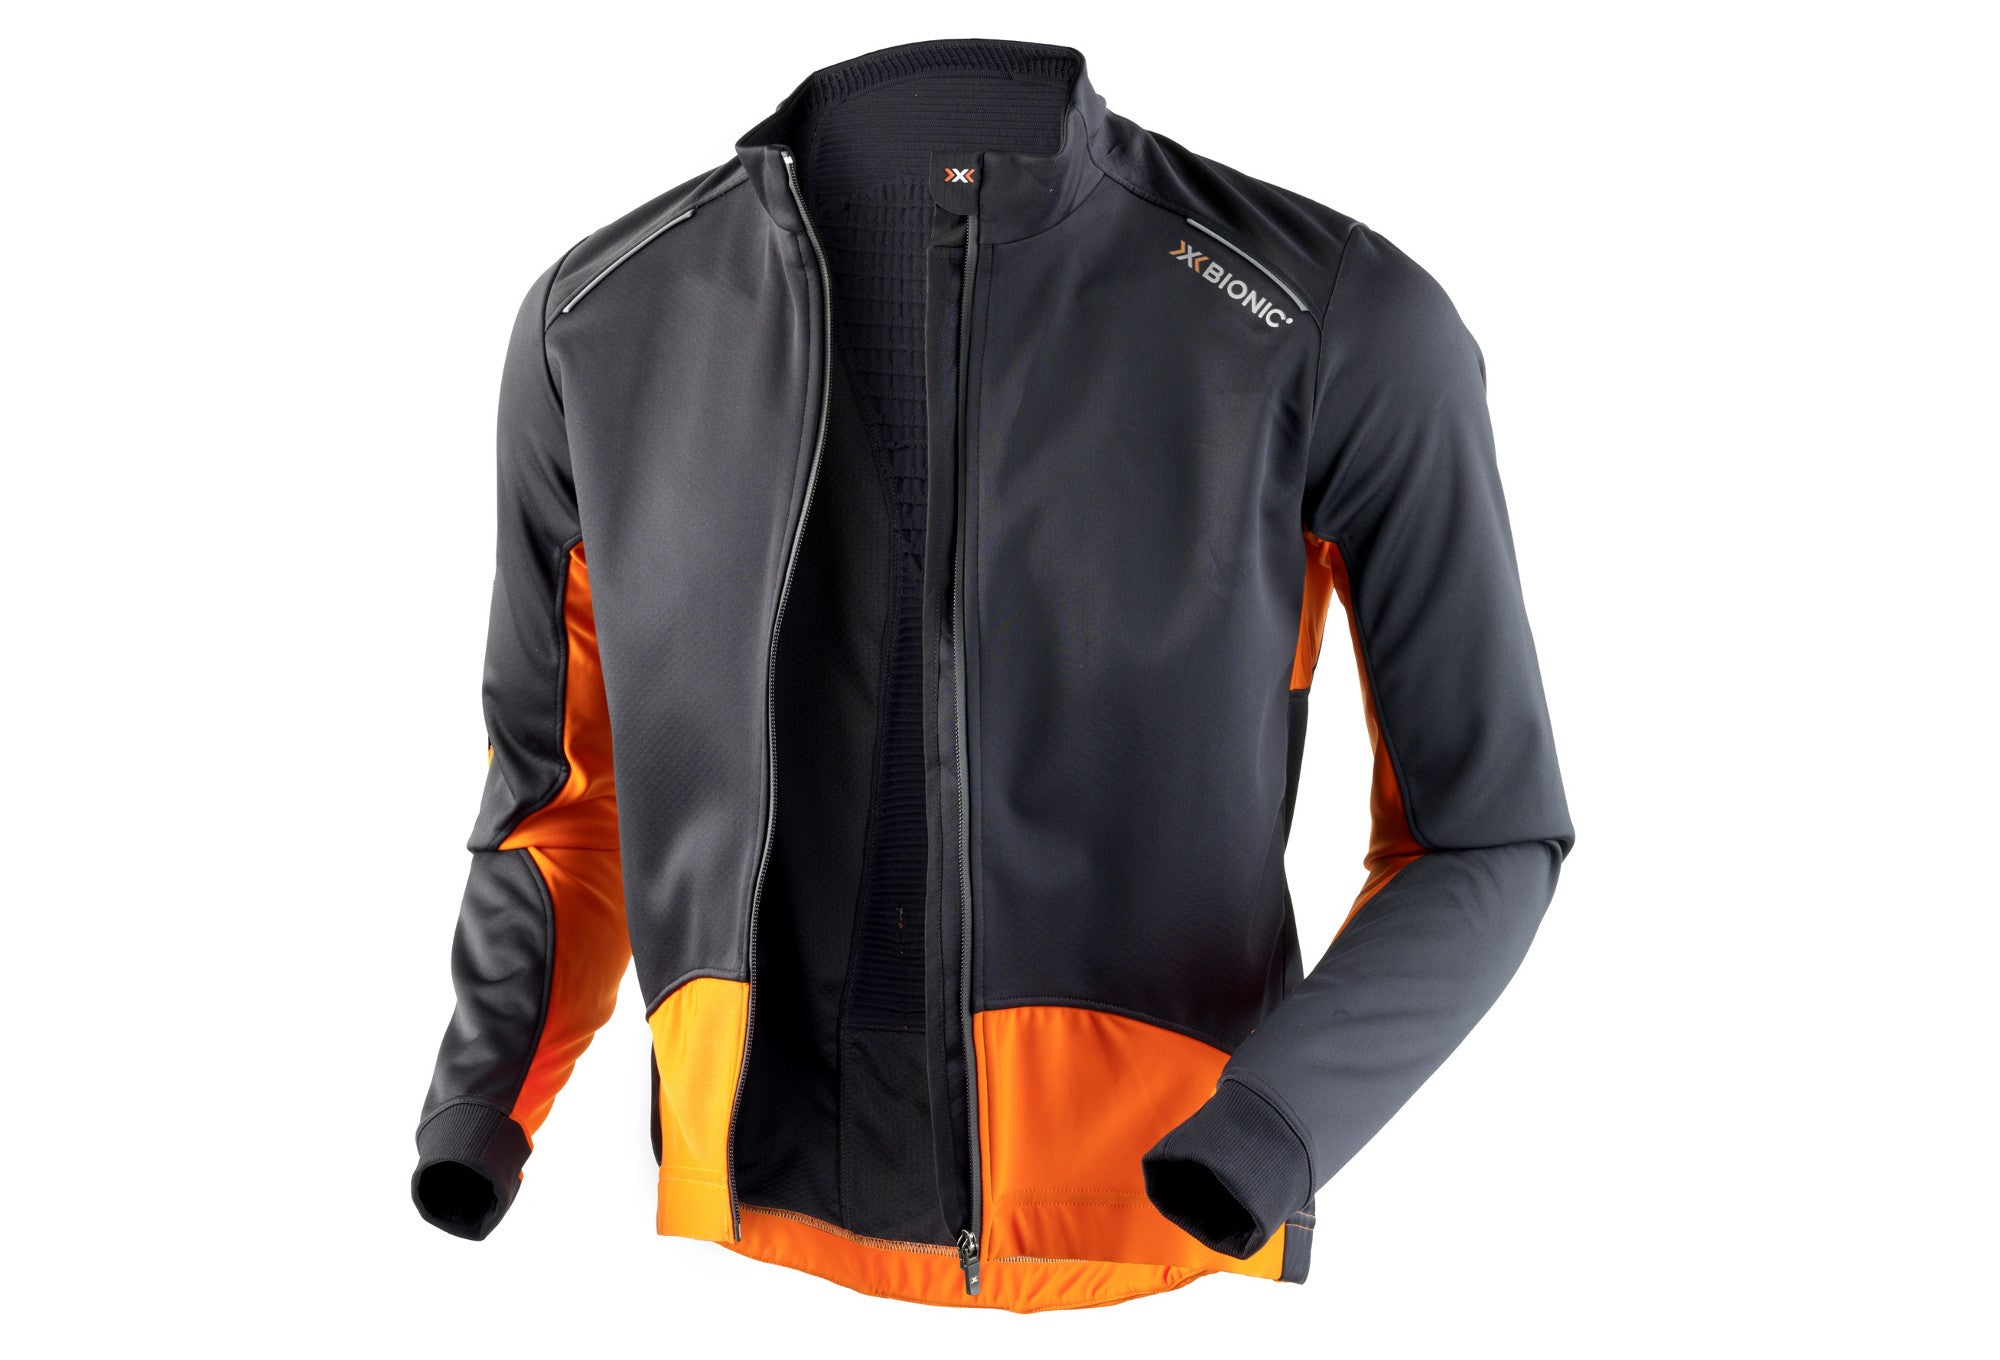 X-Bionic BT 1.3 Spherewind Winter Jacket - Orange & Black